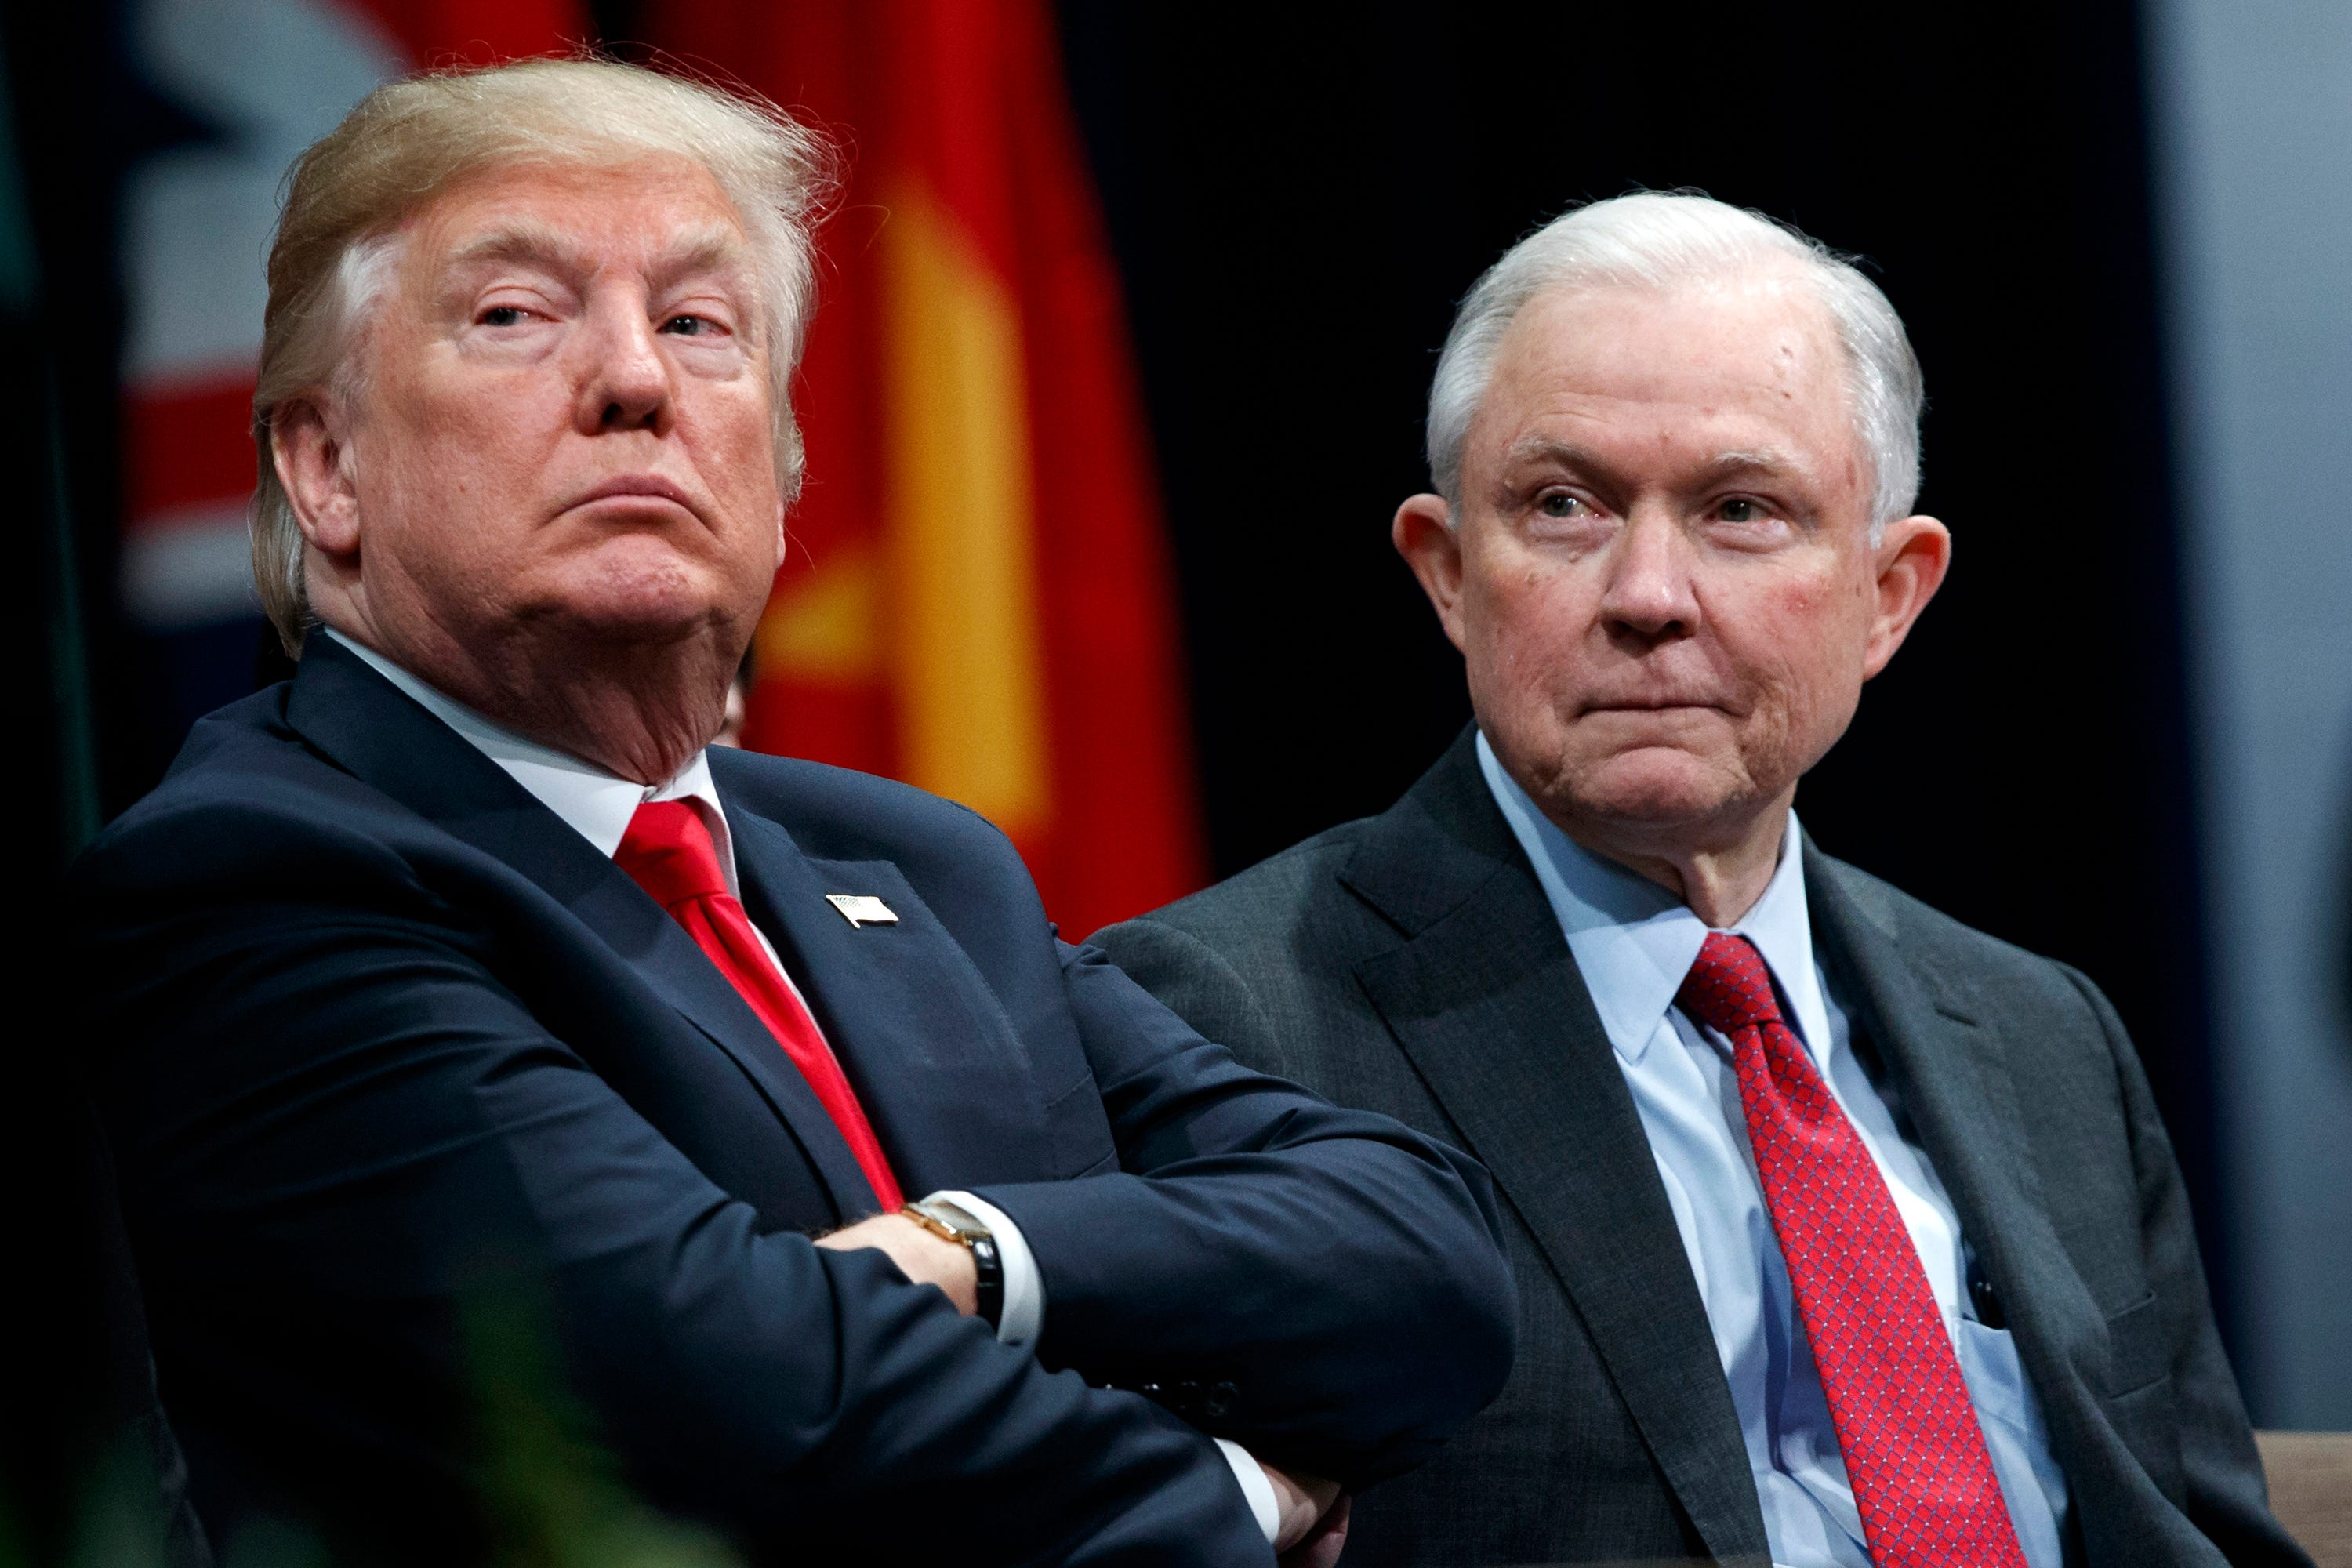 Trump slams Jeff Sessions after Super Tuesday as ex-AG heads into run-off against Tommy Tuberville